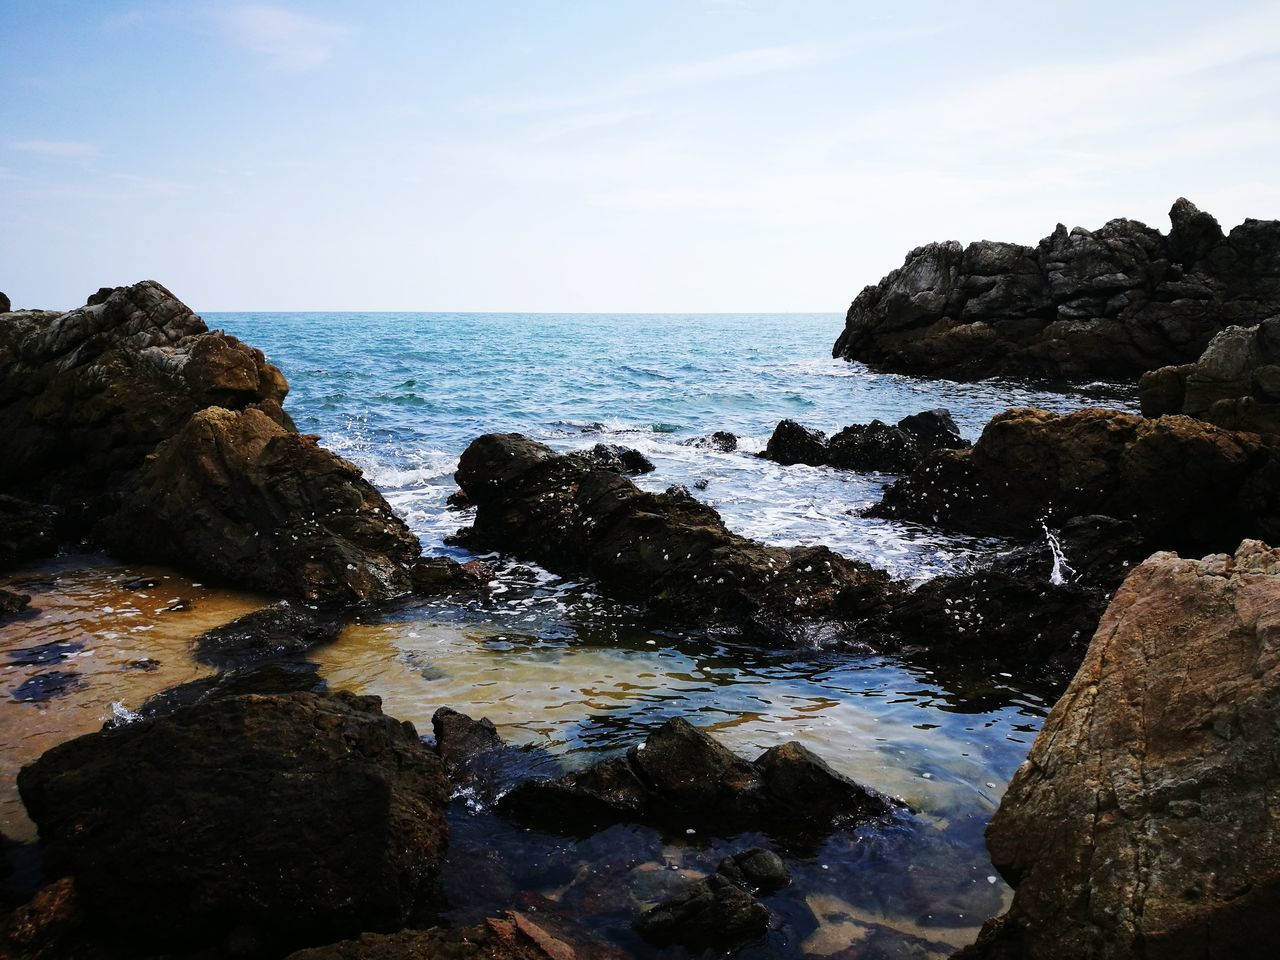 EyeEmNewHere Sea Rock - Object Beach Horizon Over Water Water Nature No People Outdoors Travel Destinations Wave Beauty In Nature Scenics Day Sky Low Tide